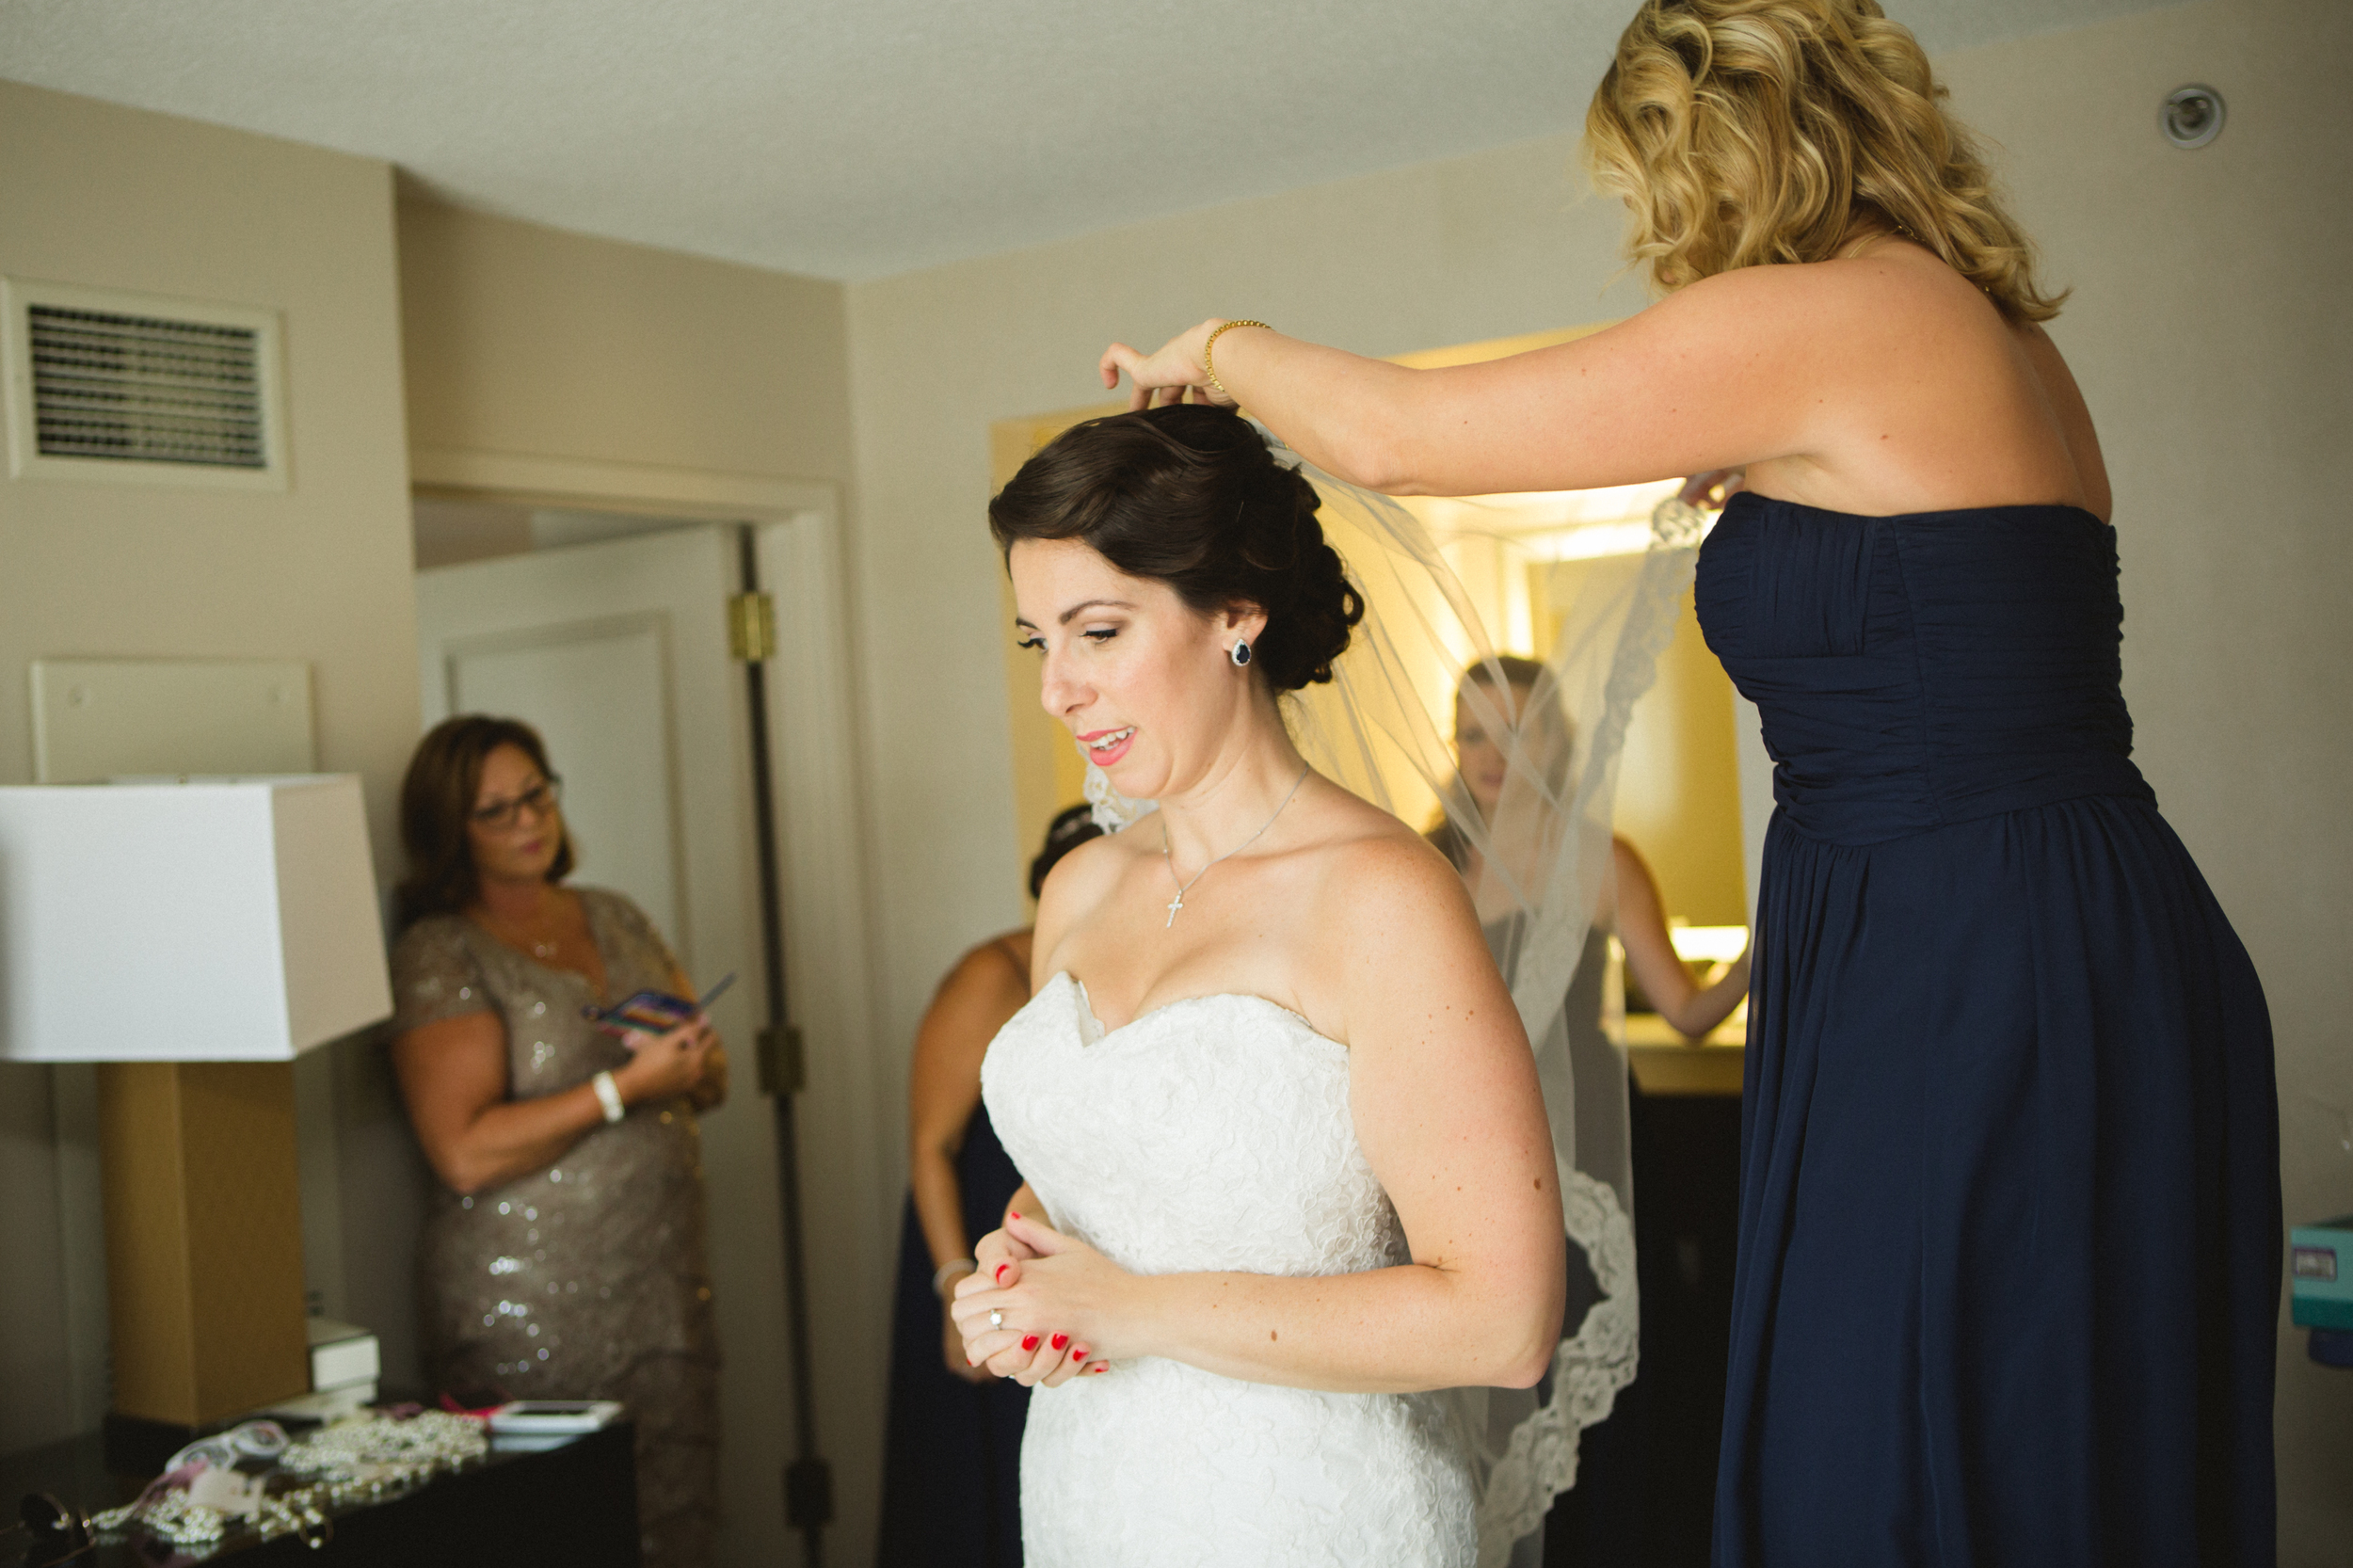 Vness_Photography_Wedding_Photographer_Washington-DC_Fish_Wedding-166.JPG